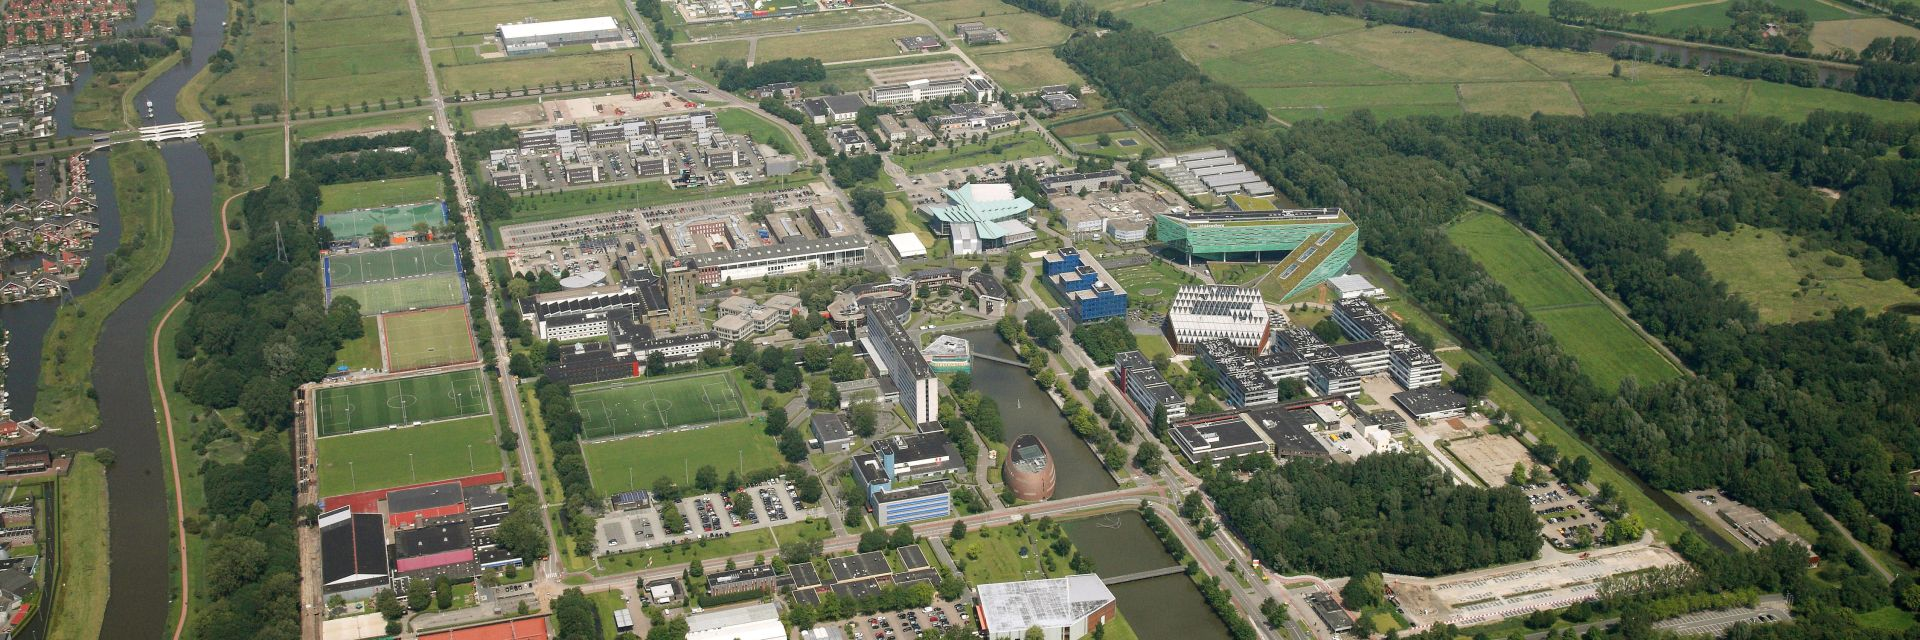 RIG subsidy of 15 million for Zernike Campus Groningen and Eemsdelta